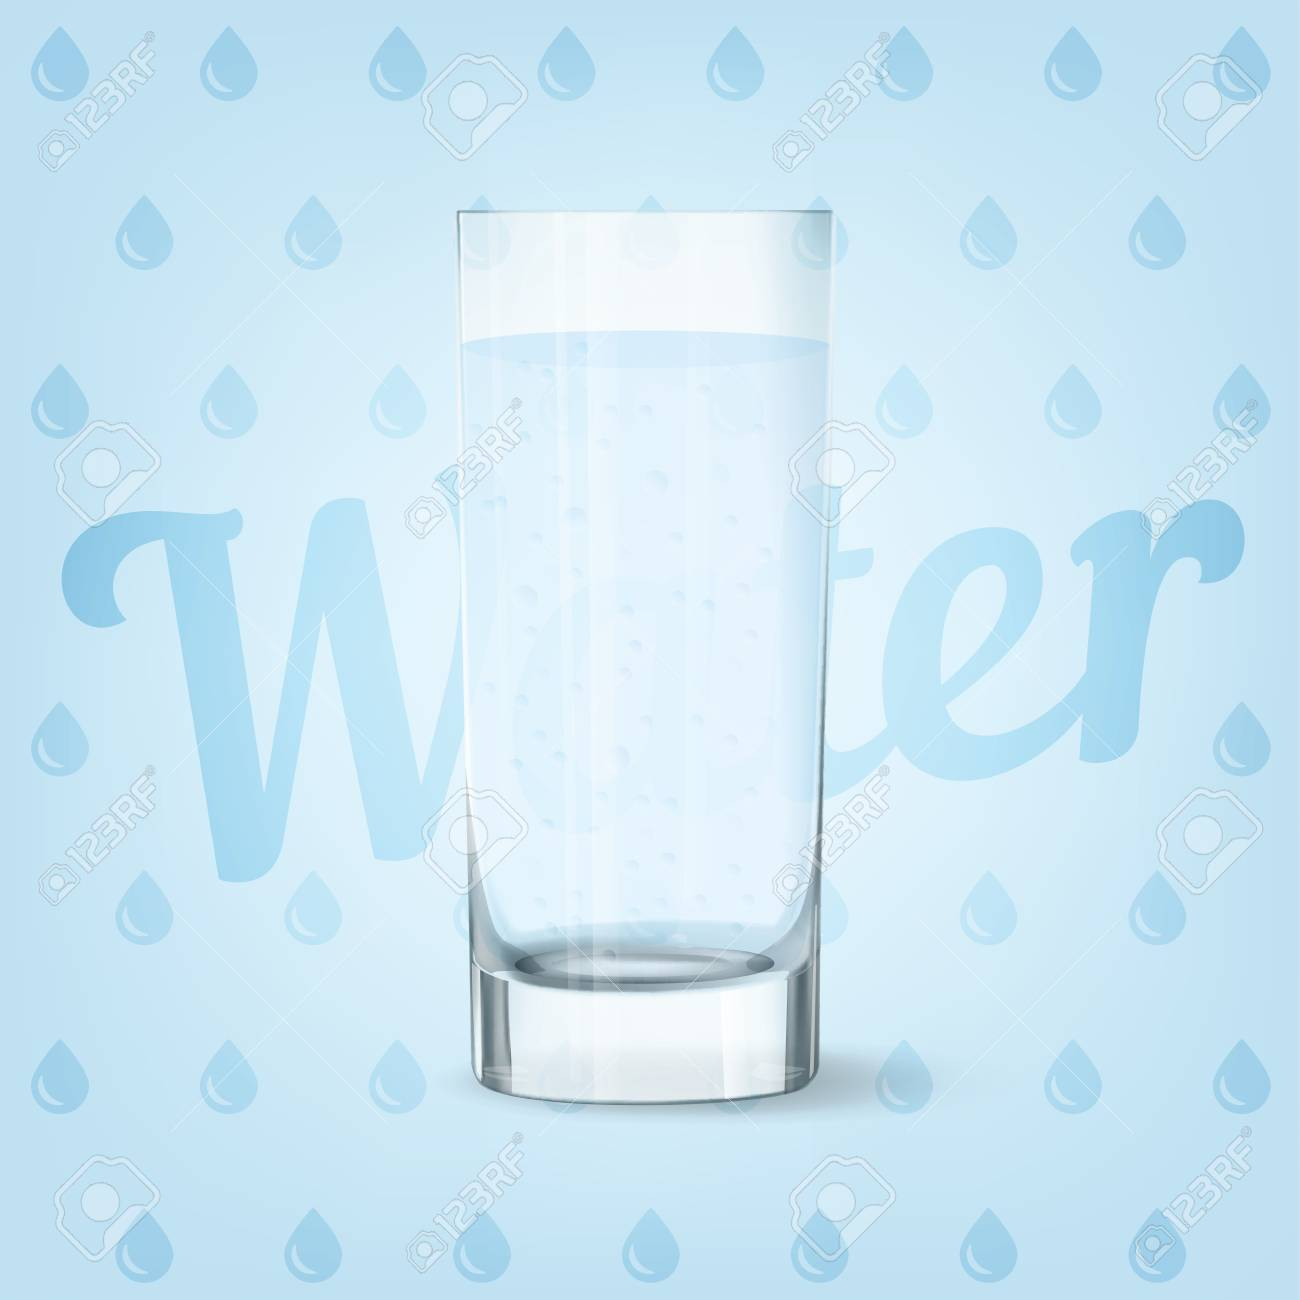 Vector image of fresh cool glass of water - 84037577